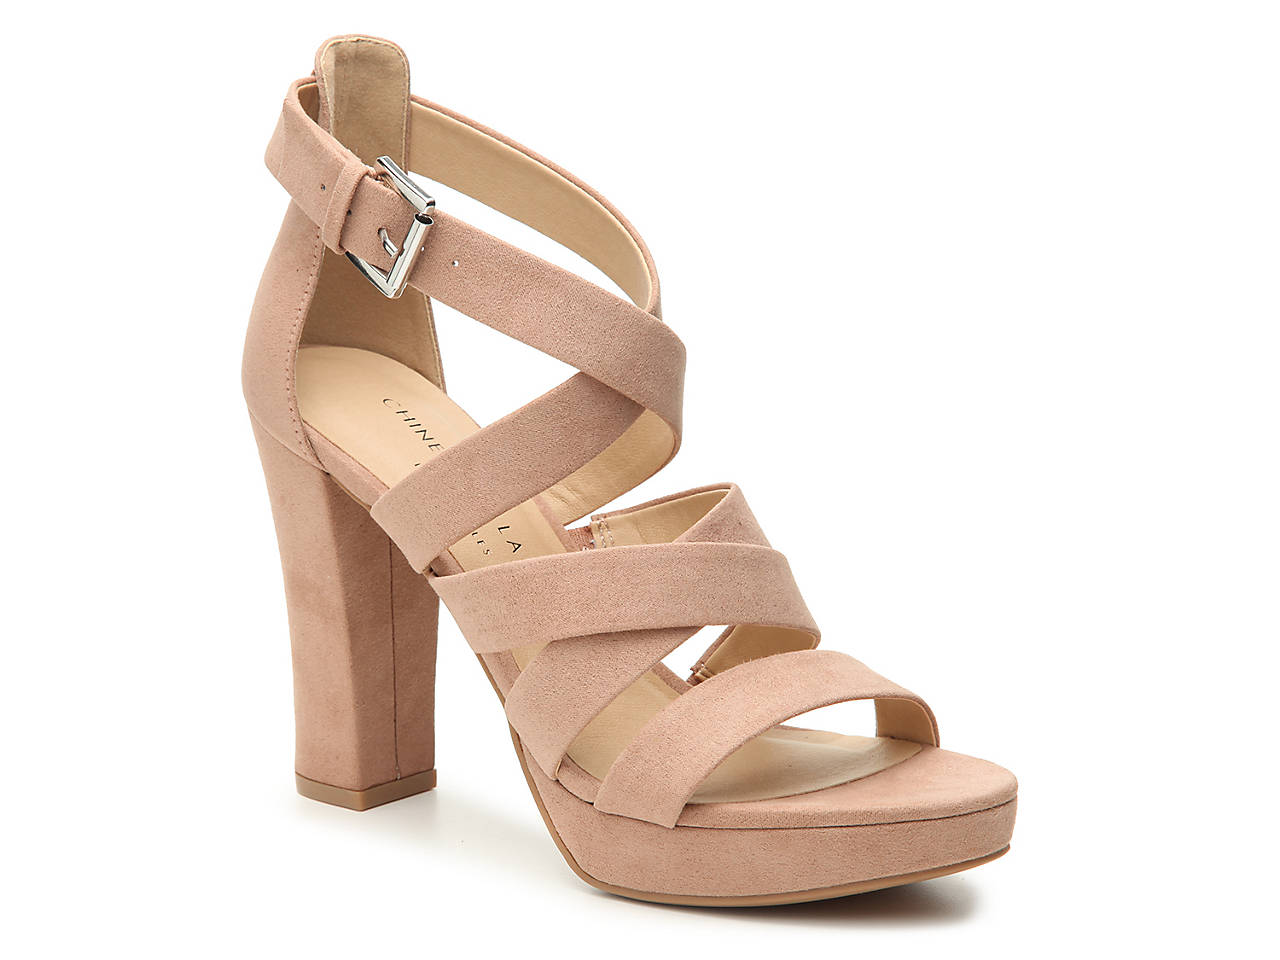 bf0119800a Chinese Laundry Amber Platform Sandal Women s Shoes